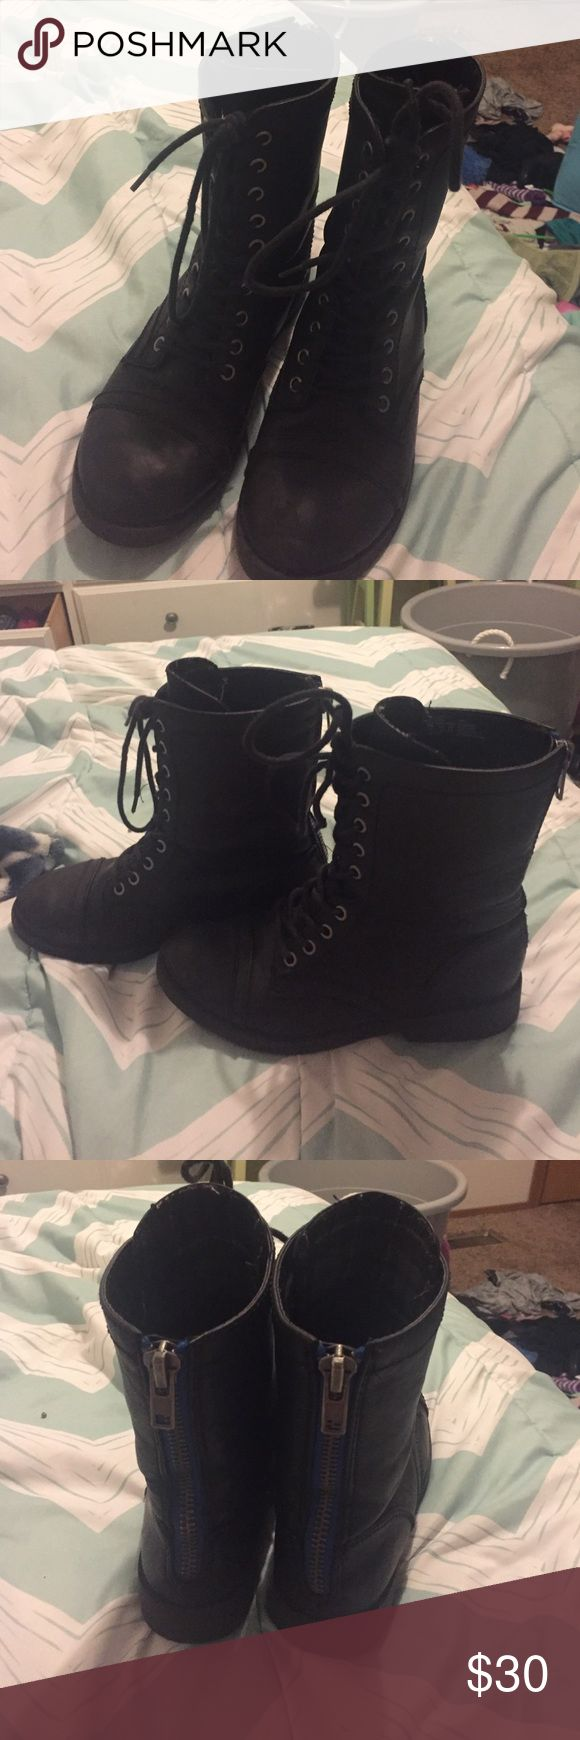 Woman's combat boots Good condition. Only worn a couple times Shoes Combat & Moto Boots